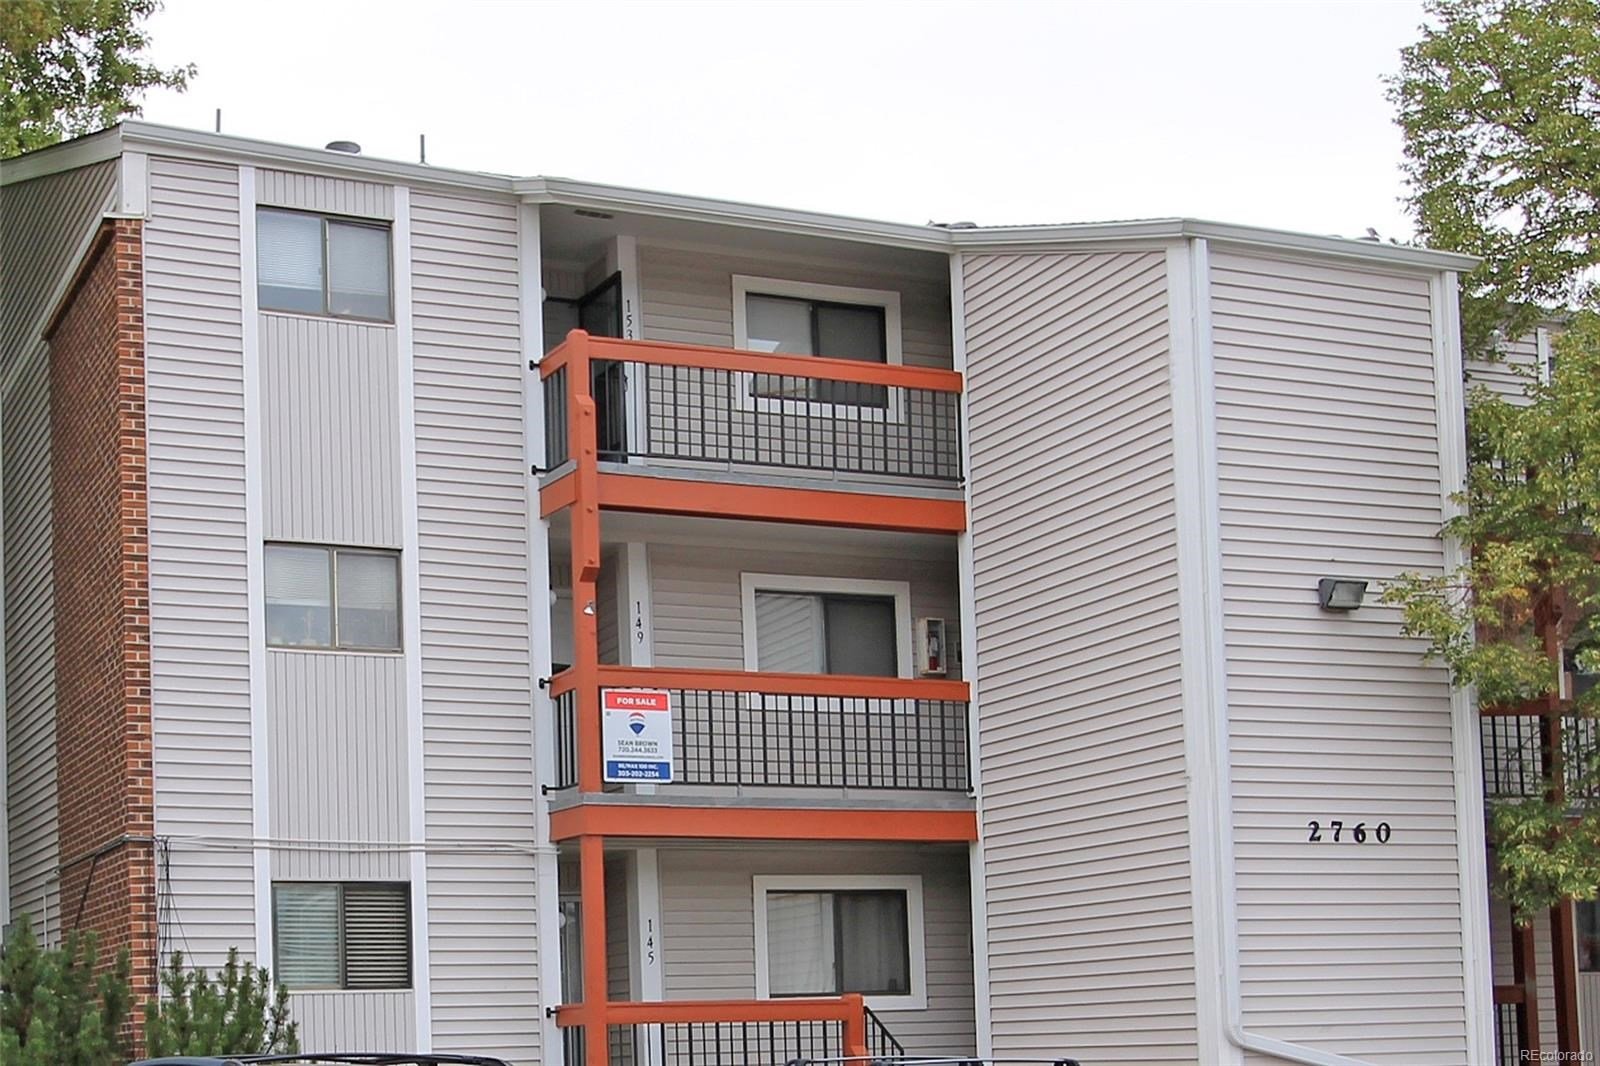 MLS# 4923129 - 1 - 2760 W 86th Avenue #149, Westminster, CO 80031